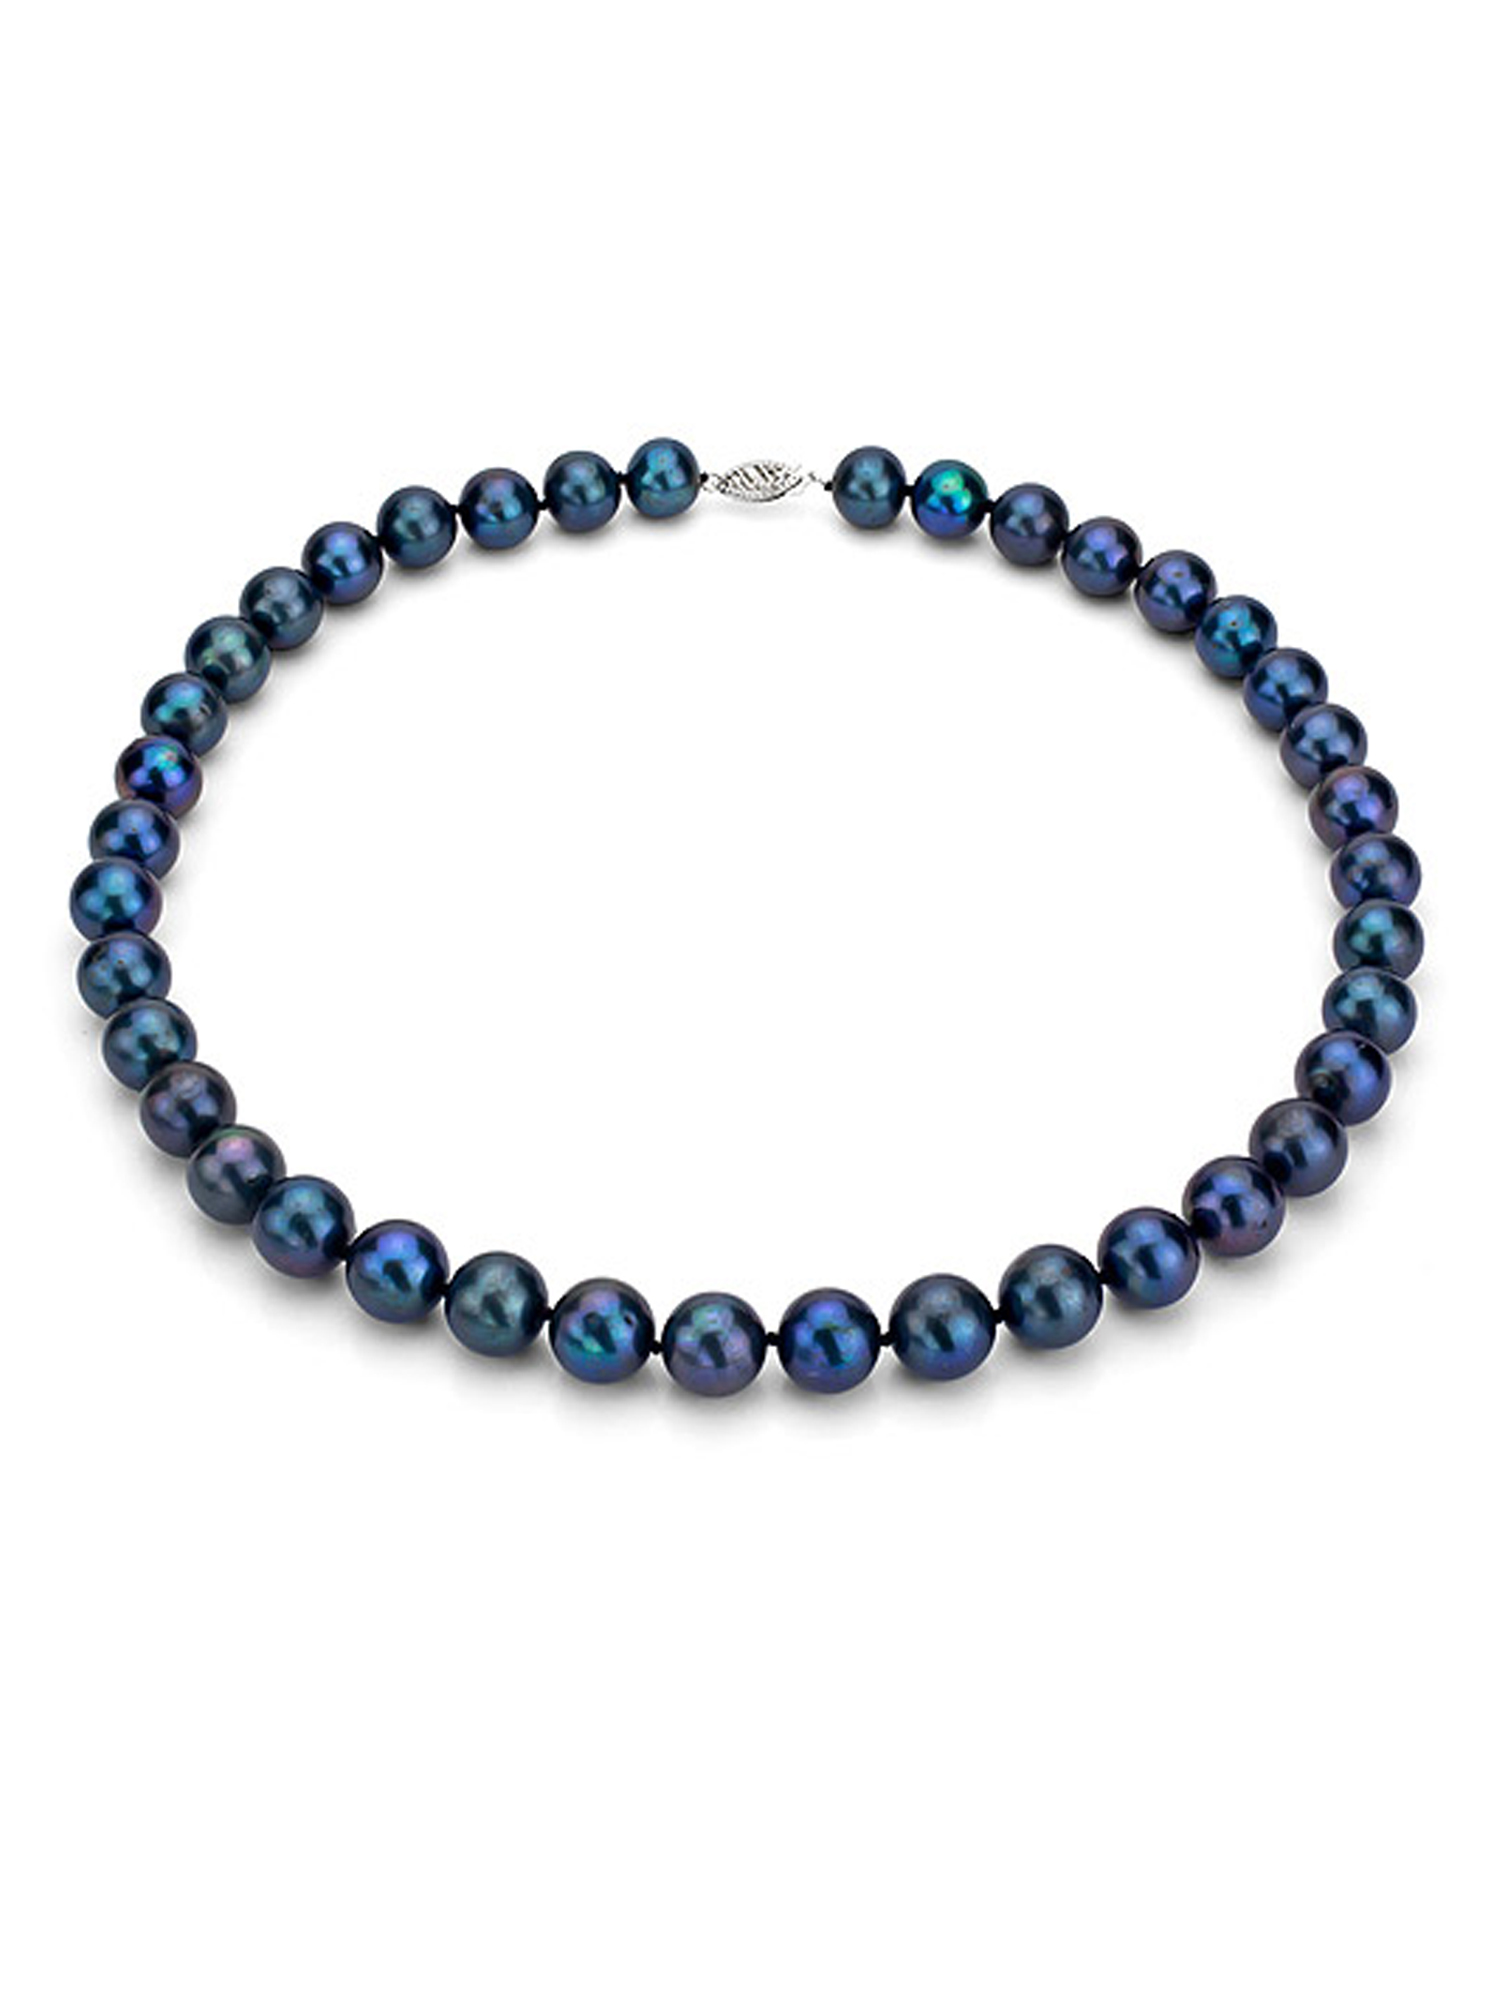 """Ultra-Luster 9-10mm Black Genuine Cultured Freshwater Pearl 18"""" Necklace and Sterling Silver Filigree Clasp by ADDURN"""